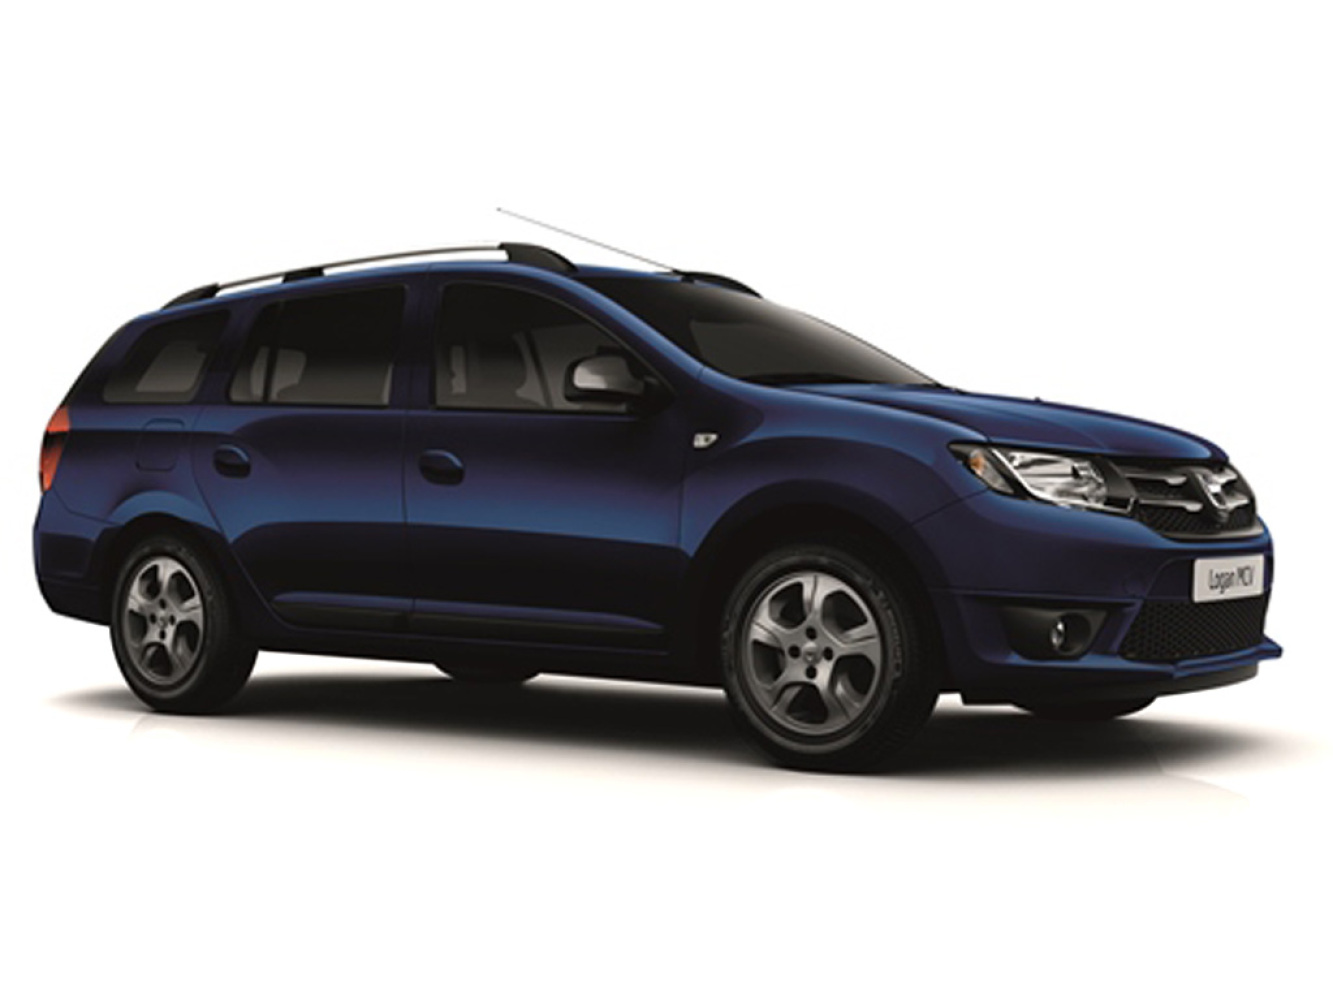 new dacia logan 1 0 sce access 5dr petrol estate for sale. Black Bedroom Furniture Sets. Home Design Ideas